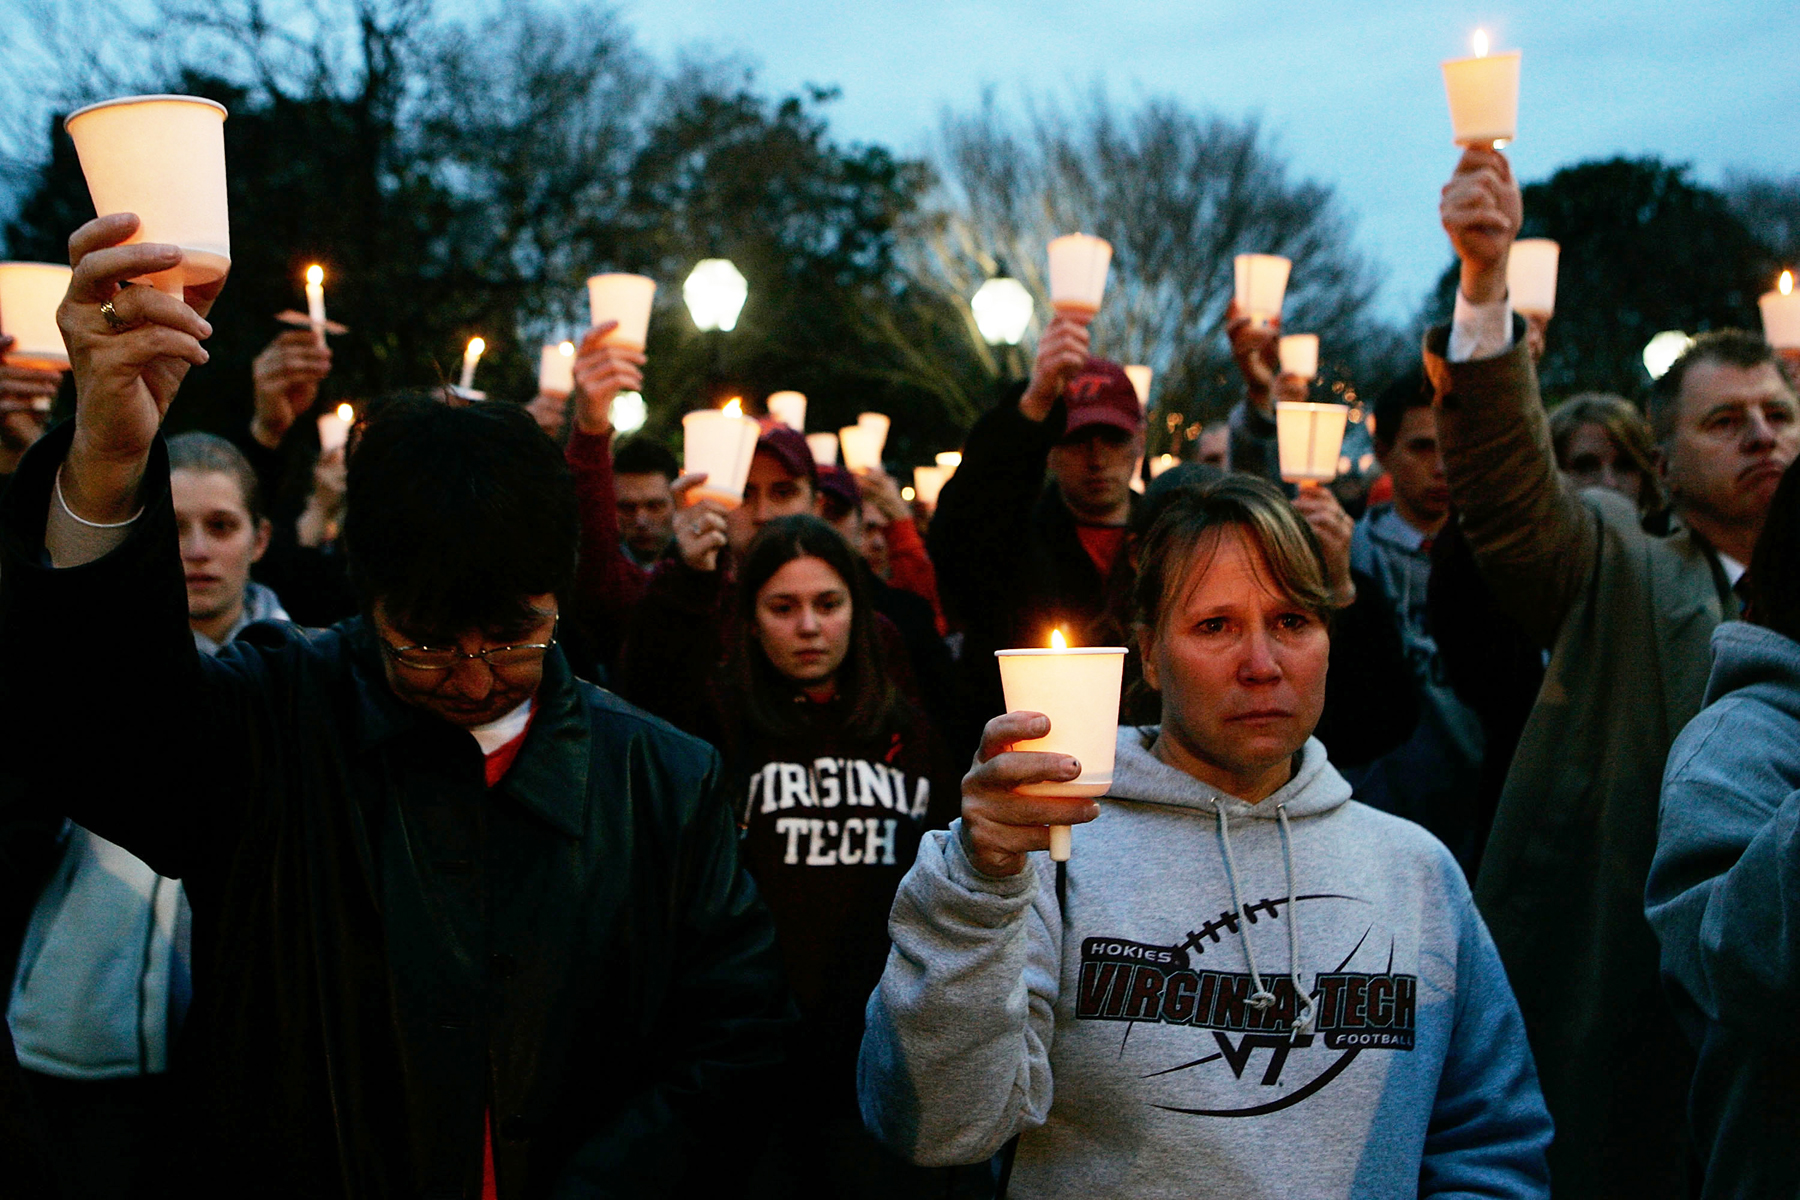 School Shootings: Widely Reported Tragedies Since 2000